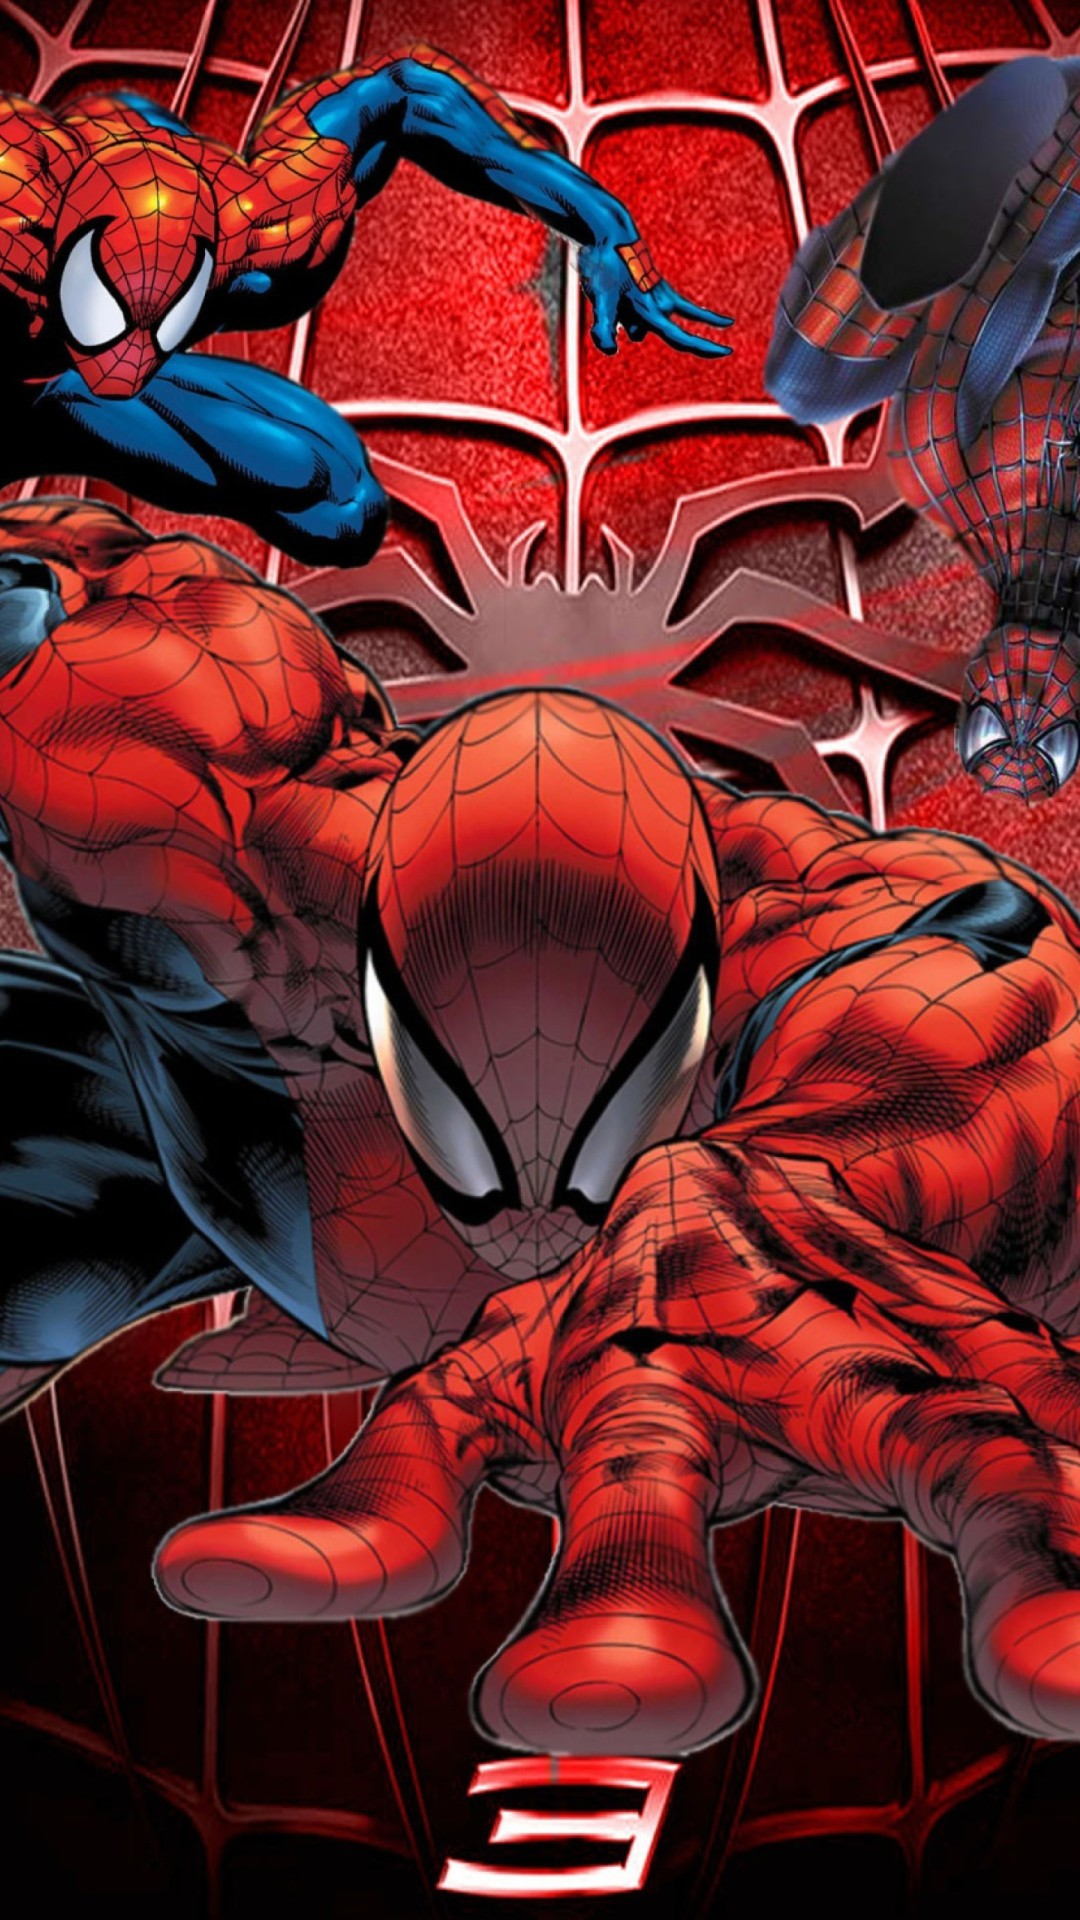 Pictures of spiderman wallpapers 65 images - Iphone 6 spiderman wallpaper ...